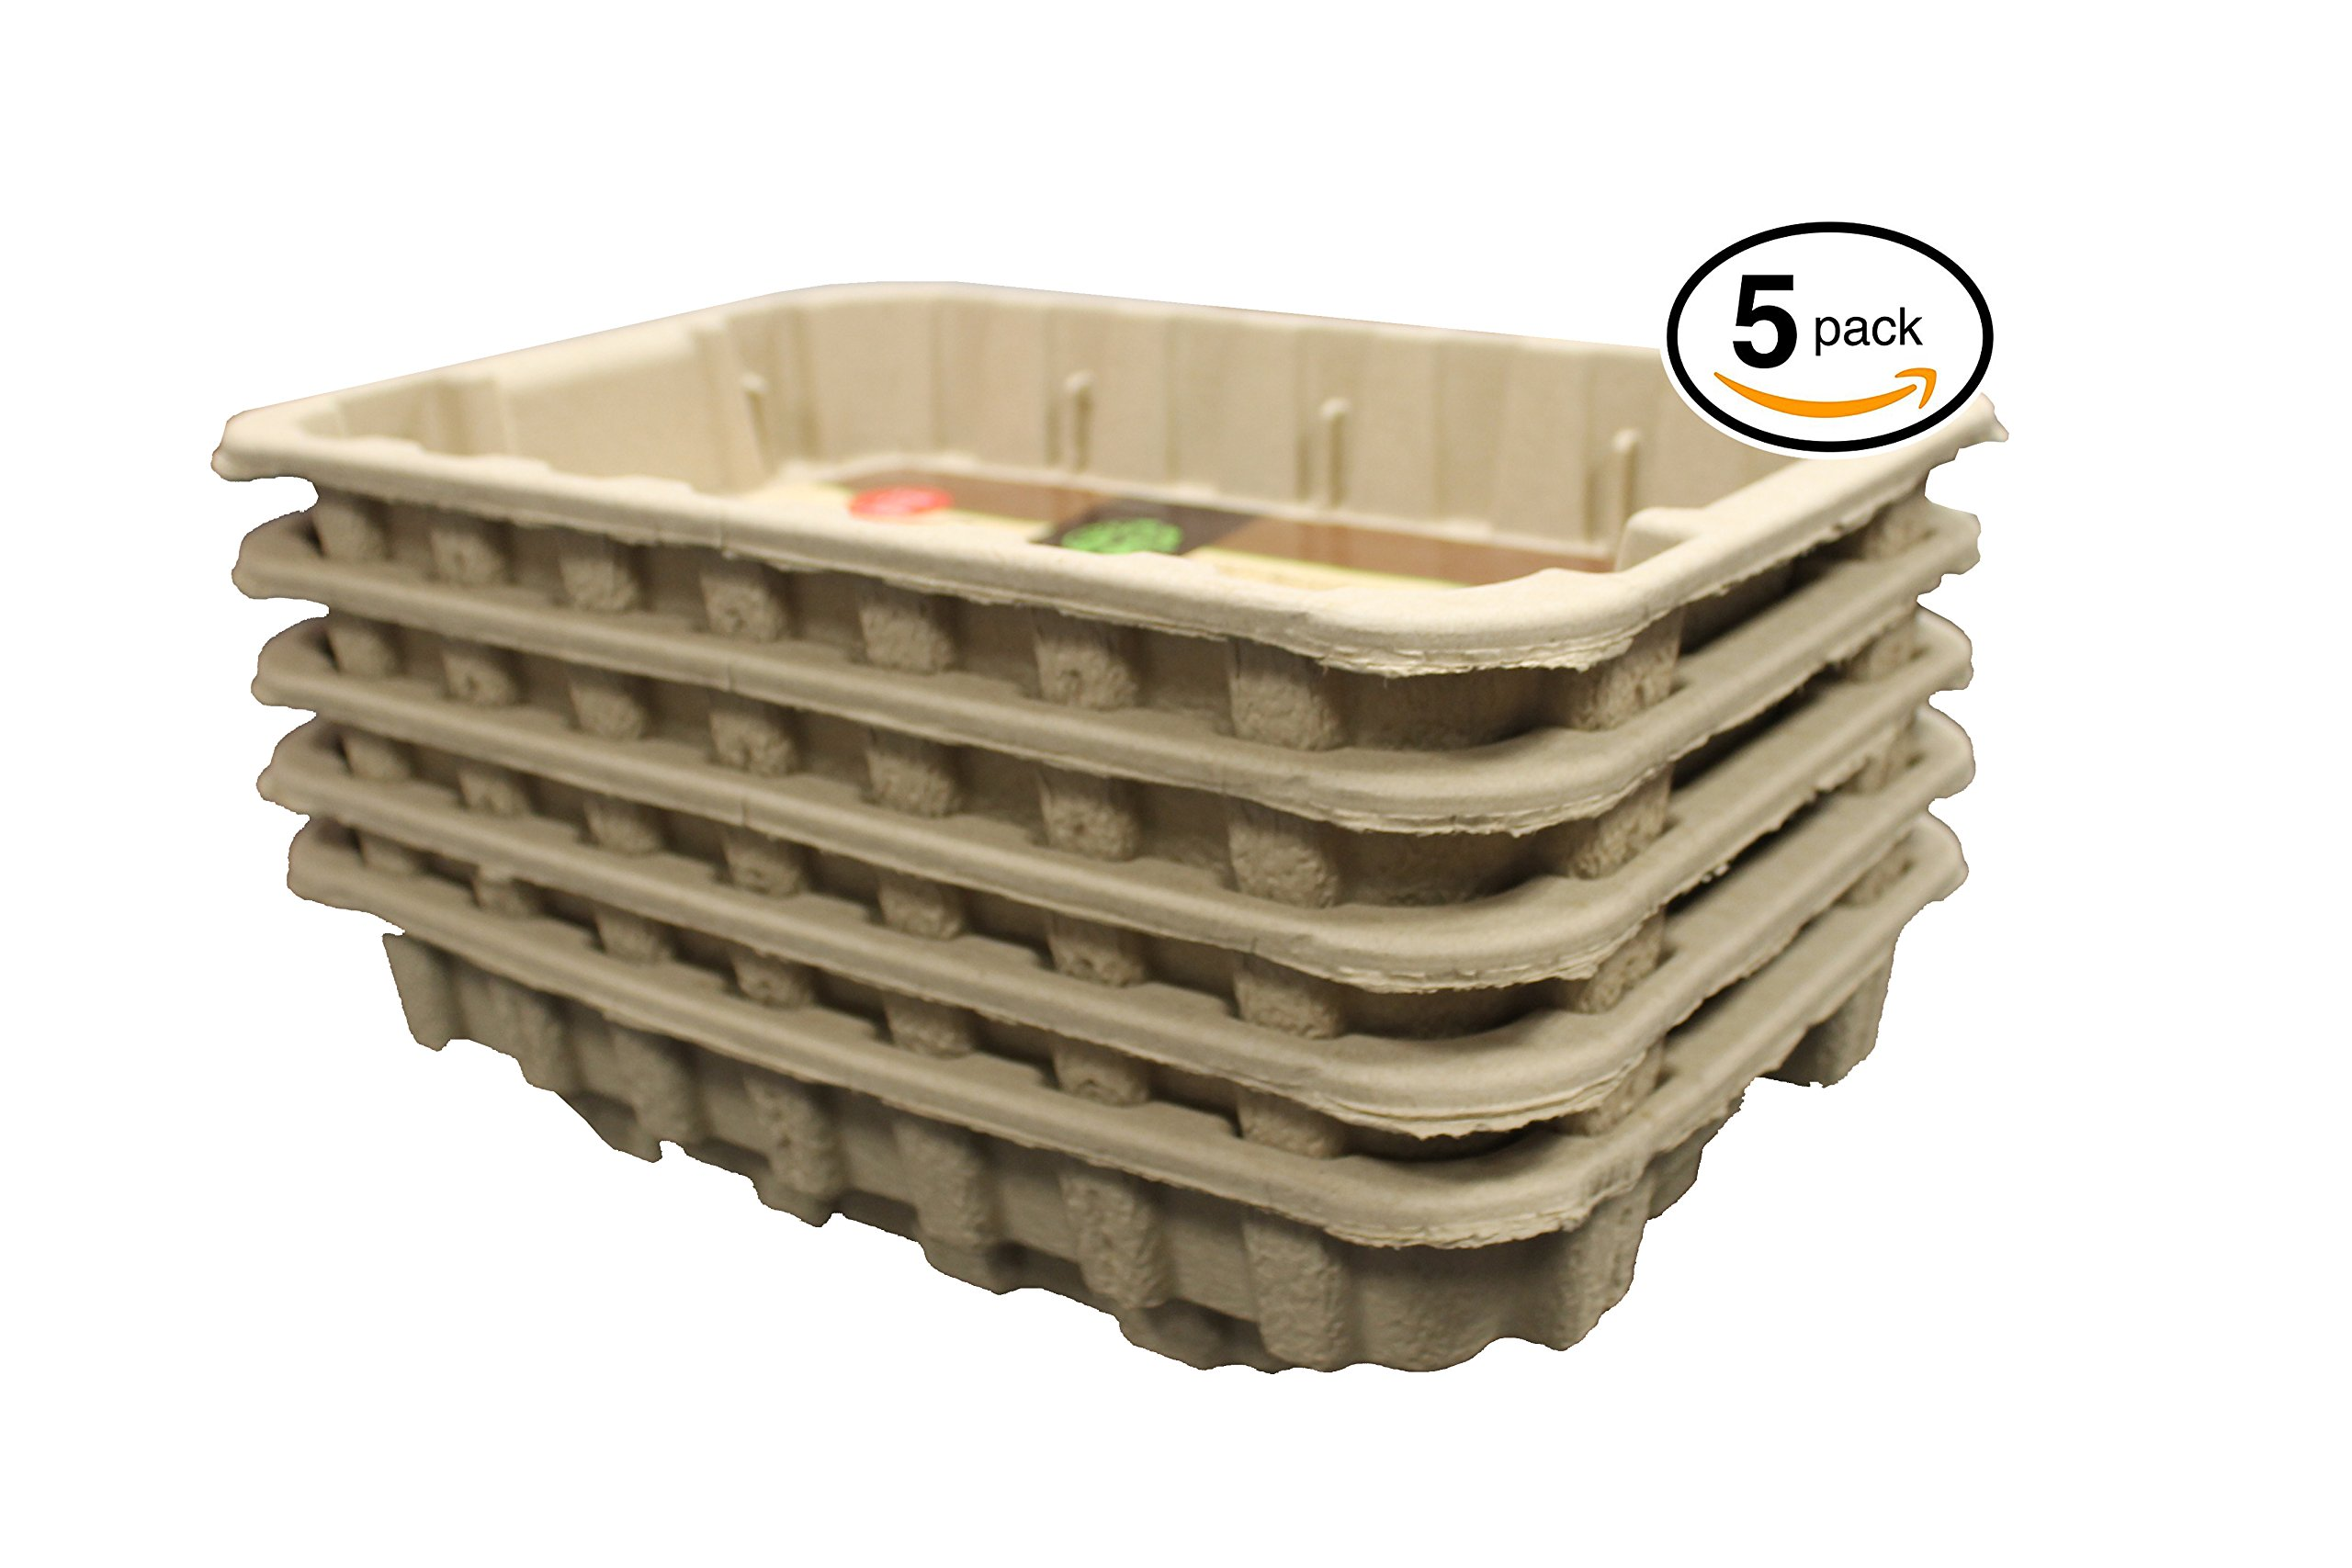 Disposable Cat Litter Boxes, Pre-Filled with 100% Recycled Paper Litter Pellets- 5 Pack of Trays- Includes Litter. Eco Friendly! Simply Peel Off Perforated Lid, Use, Dispose of Entire Tray! 4